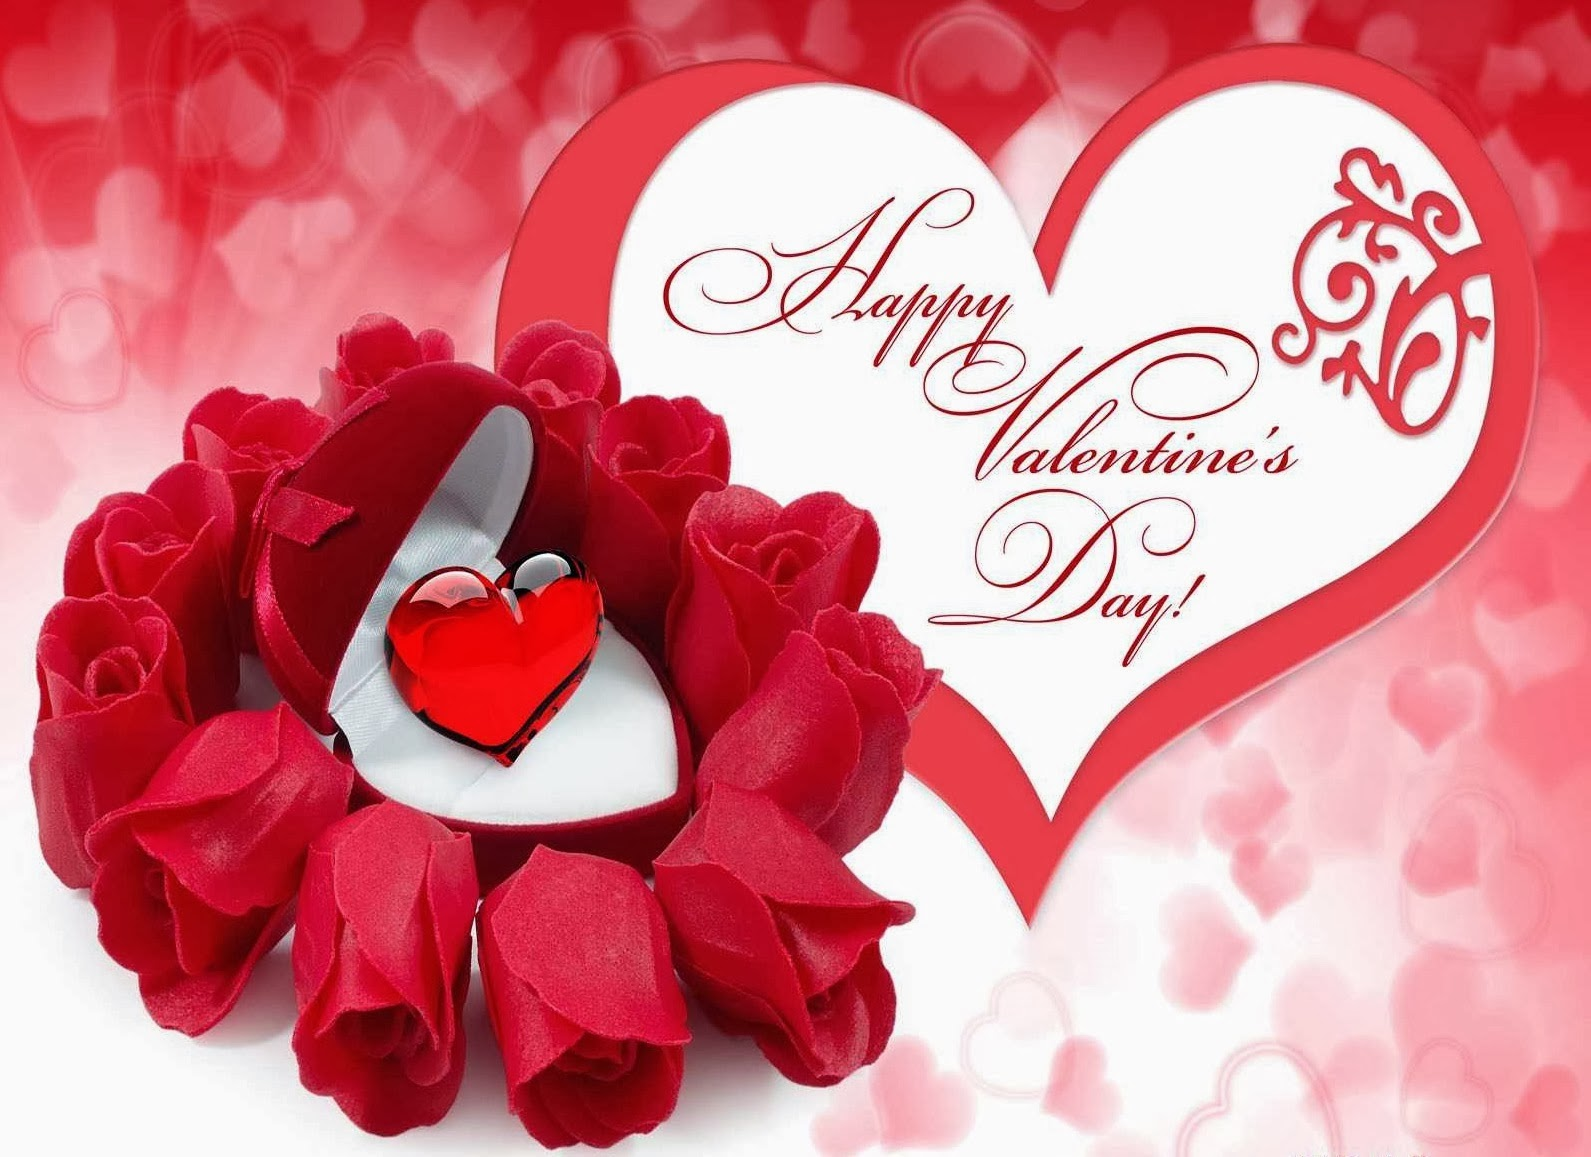 Doc550350 Romantic Valentine Card Images Romantic Valentines – Valentine Day Cards Messages